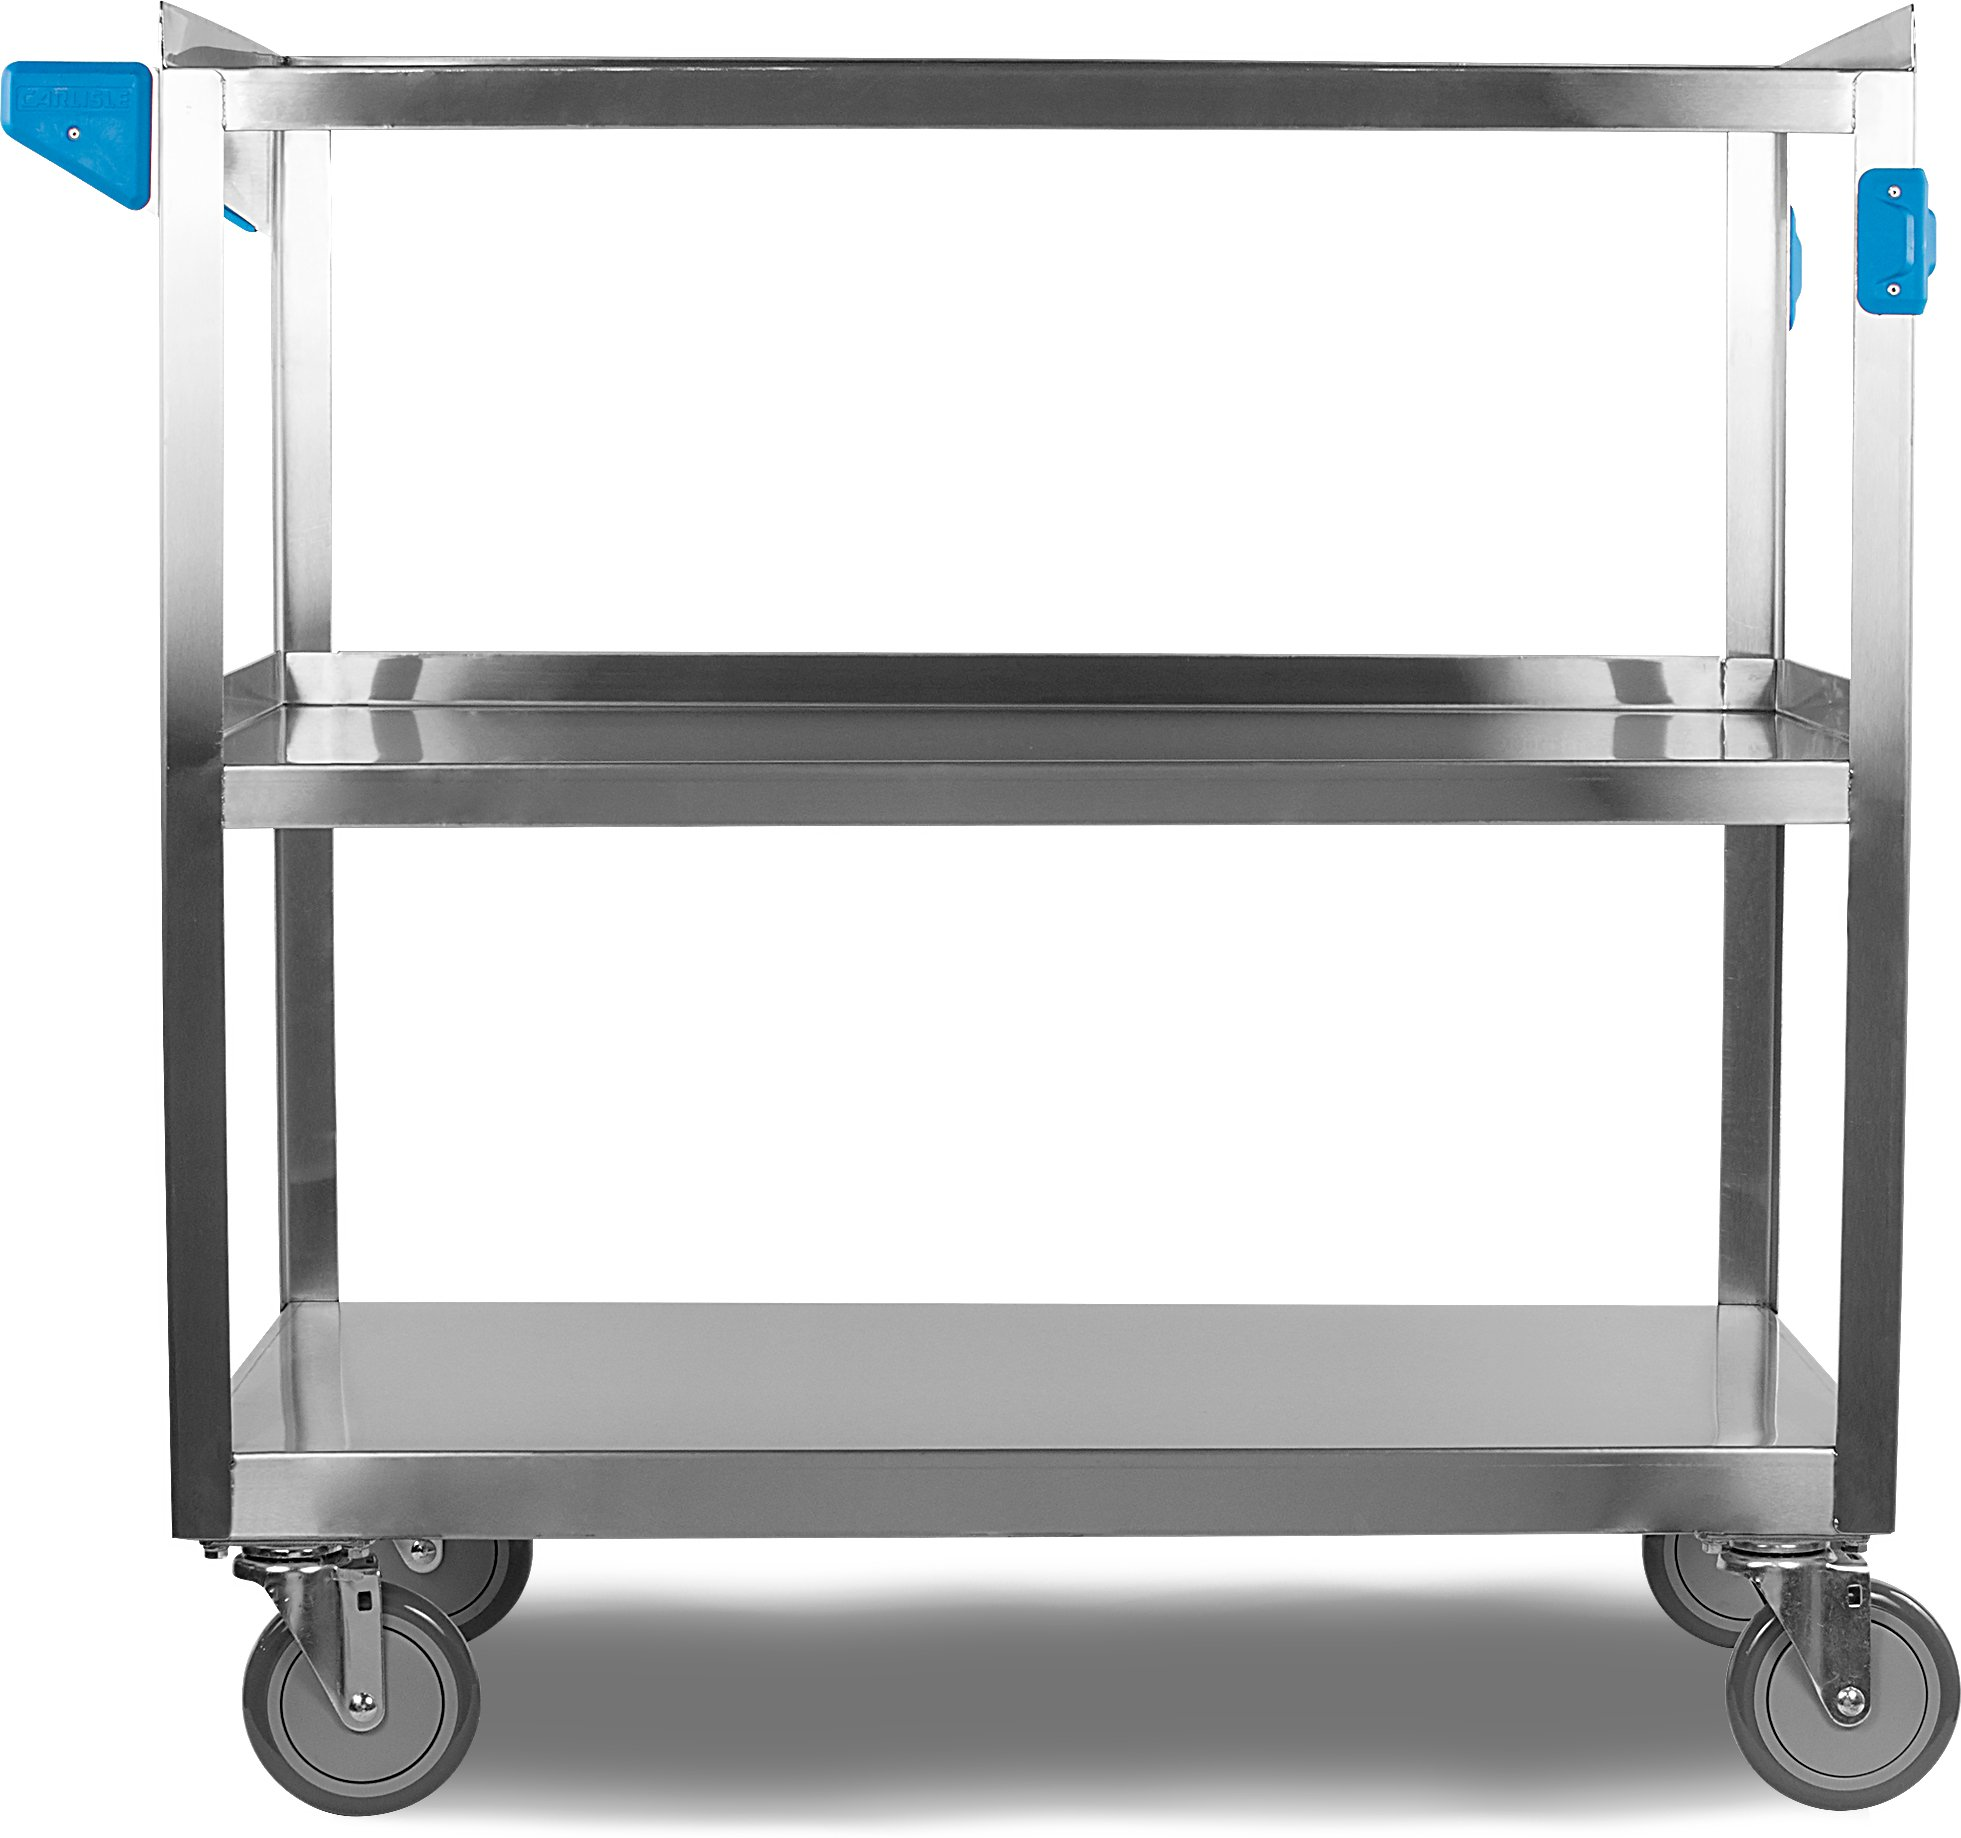 Carlisle UC5032135 3 Shelf Stainless Steel Utility / Service Cart, 500 Pound Capacity, 35'' Long x 21'' Wide x 36'' HIgh, Large